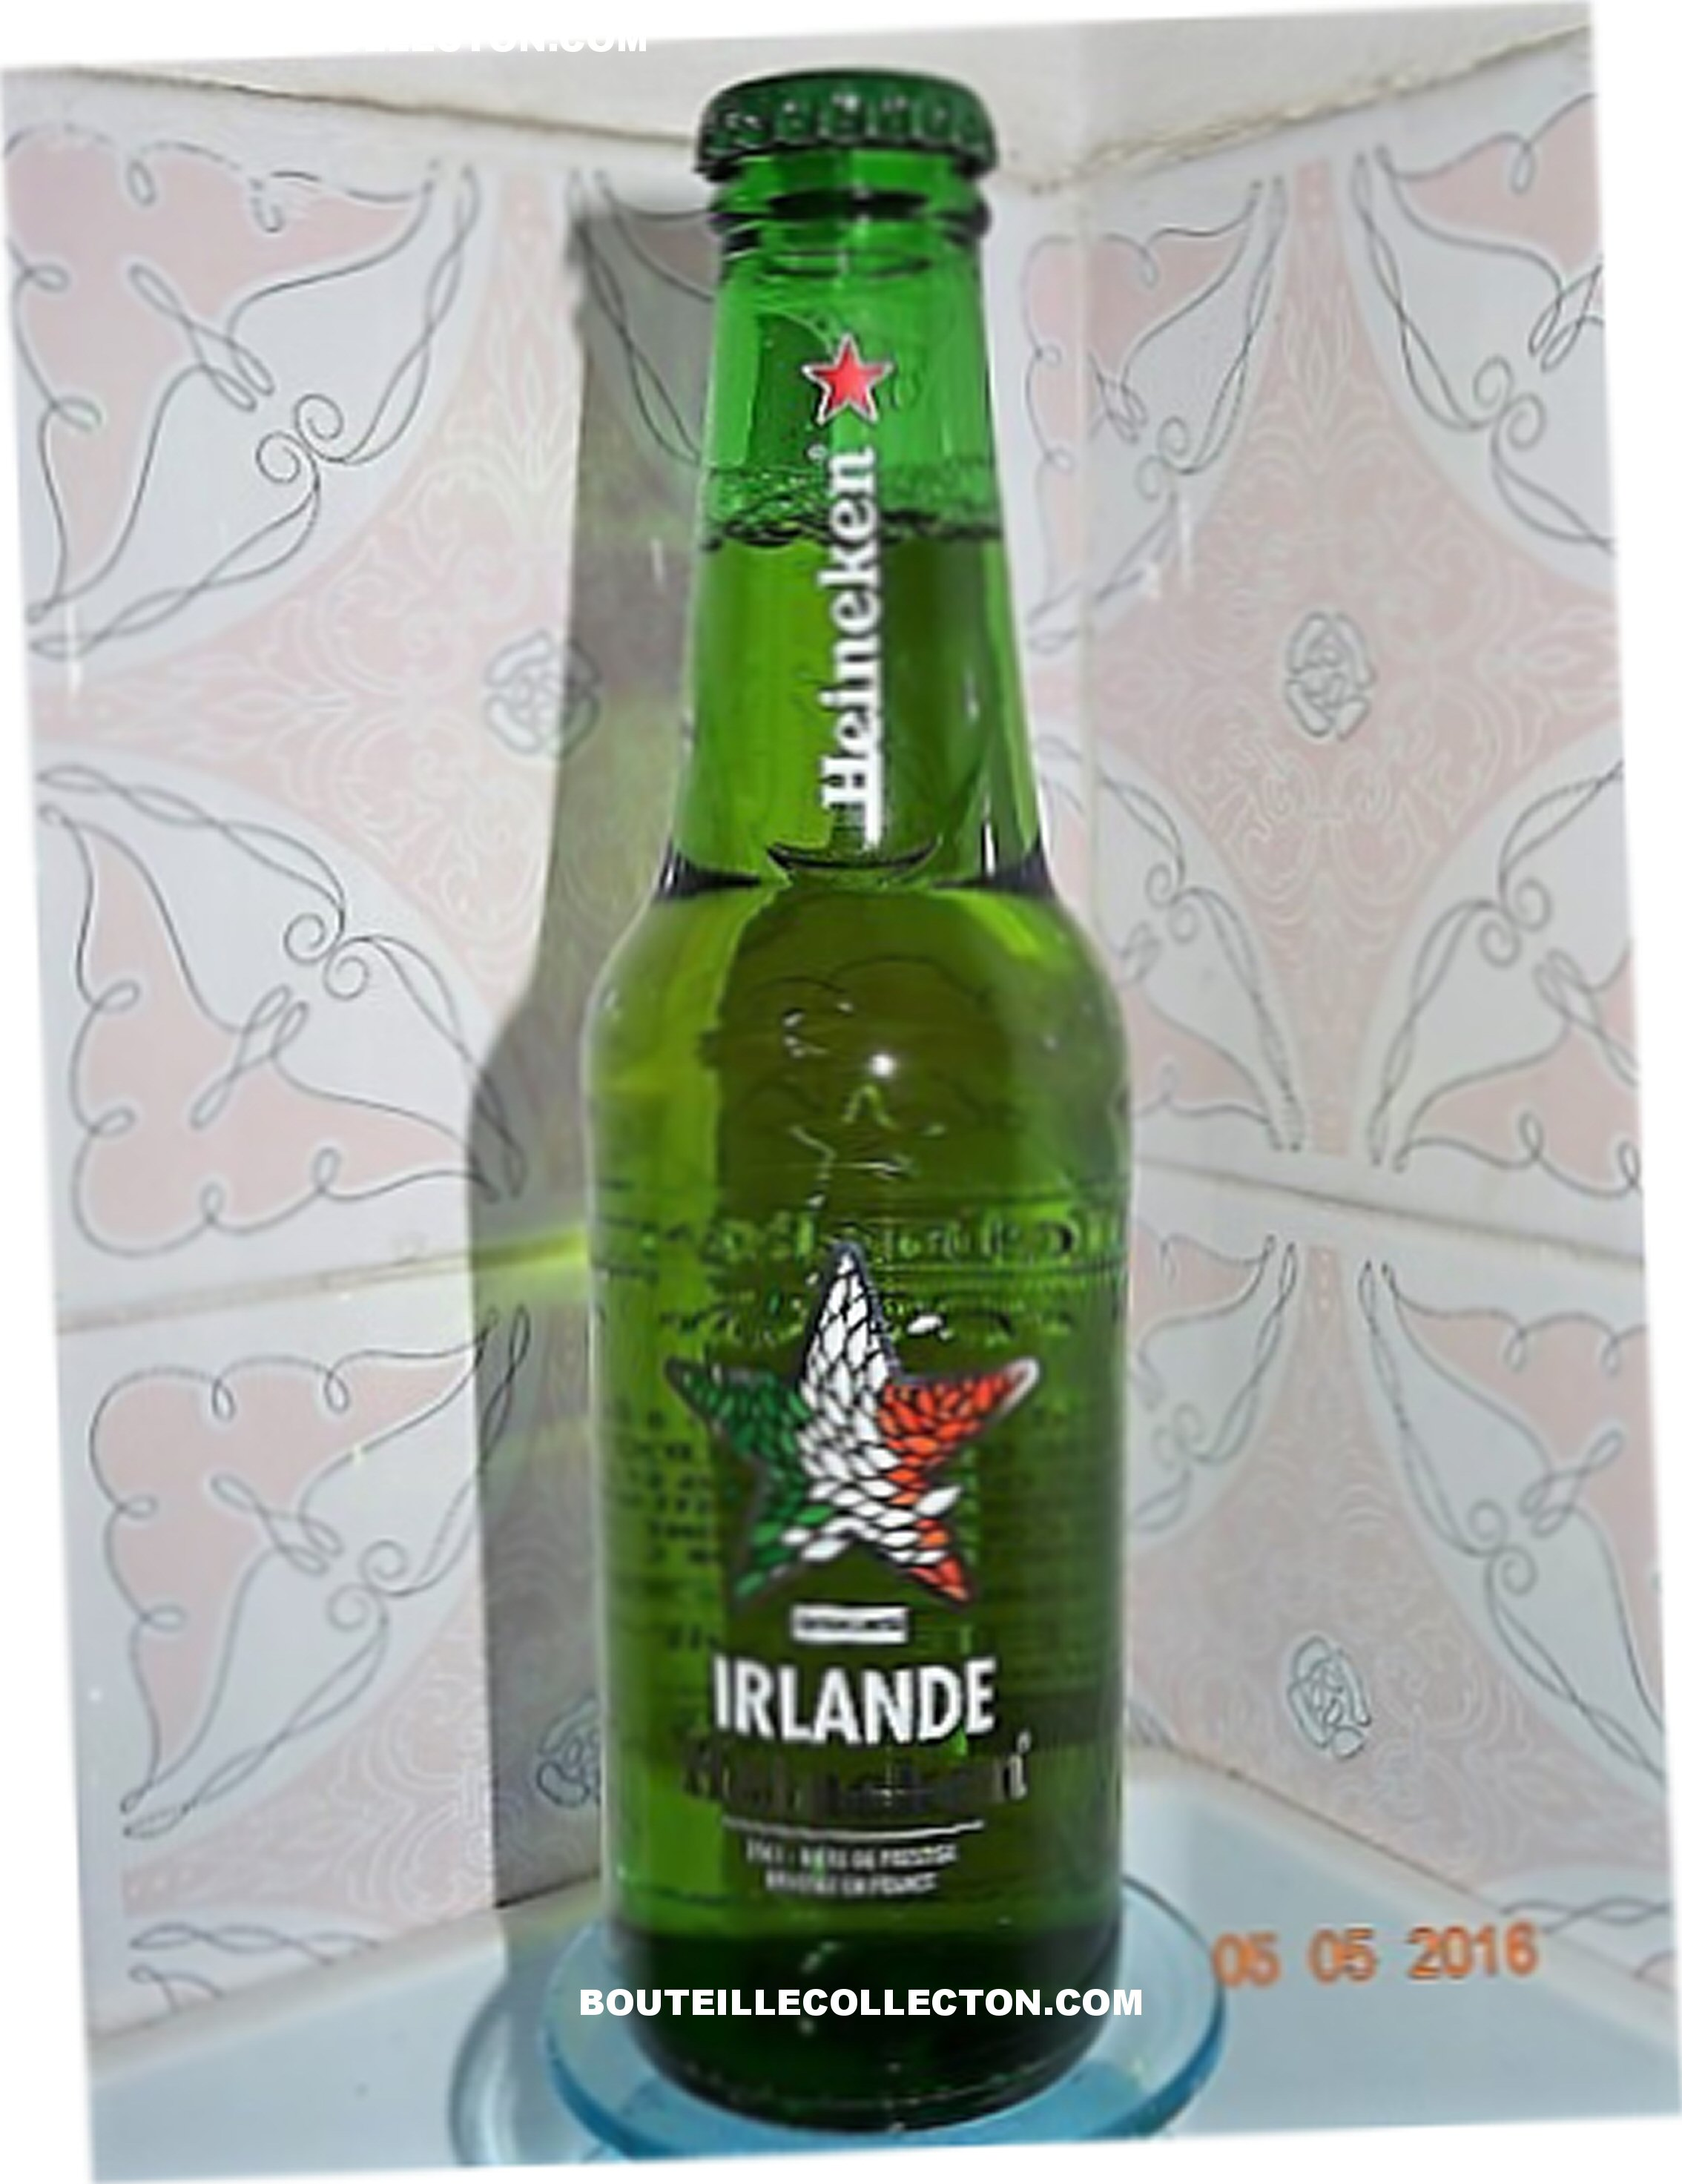 AG HEINEKEN COUNTRIES EDITION IRLANDE 2016 25CL B.jpg